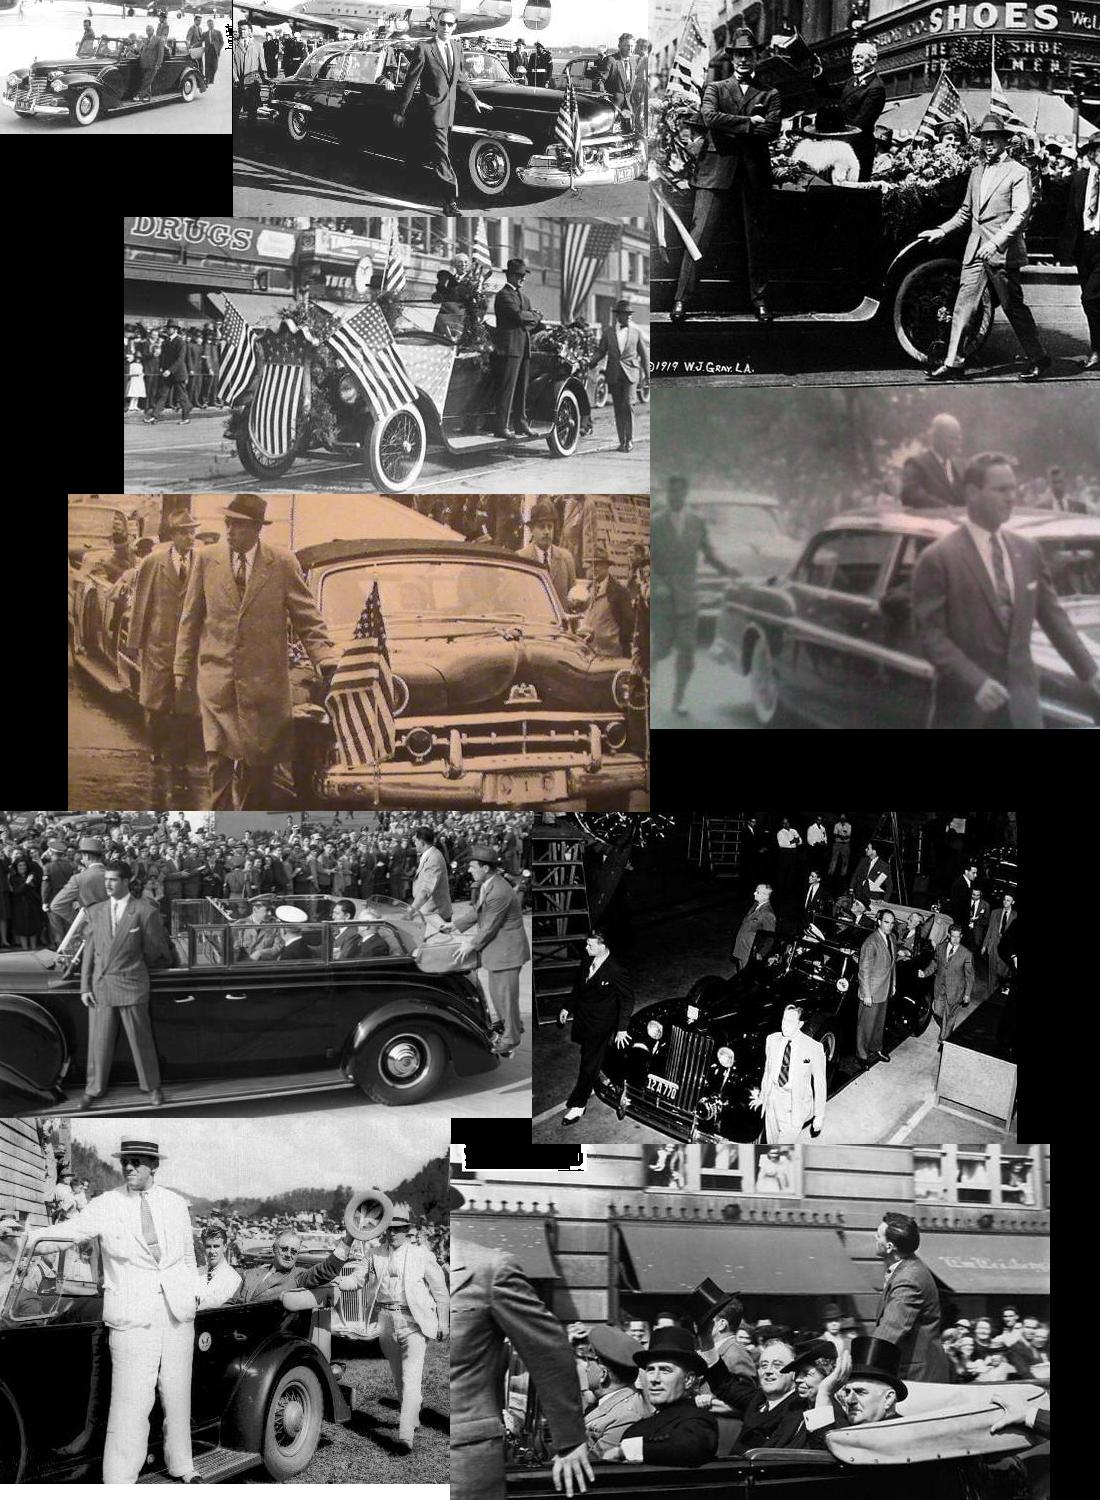 Agents on/ near limo, Wilson-Ike era: even MORE obtrusive than during JFK era! They didn't mind